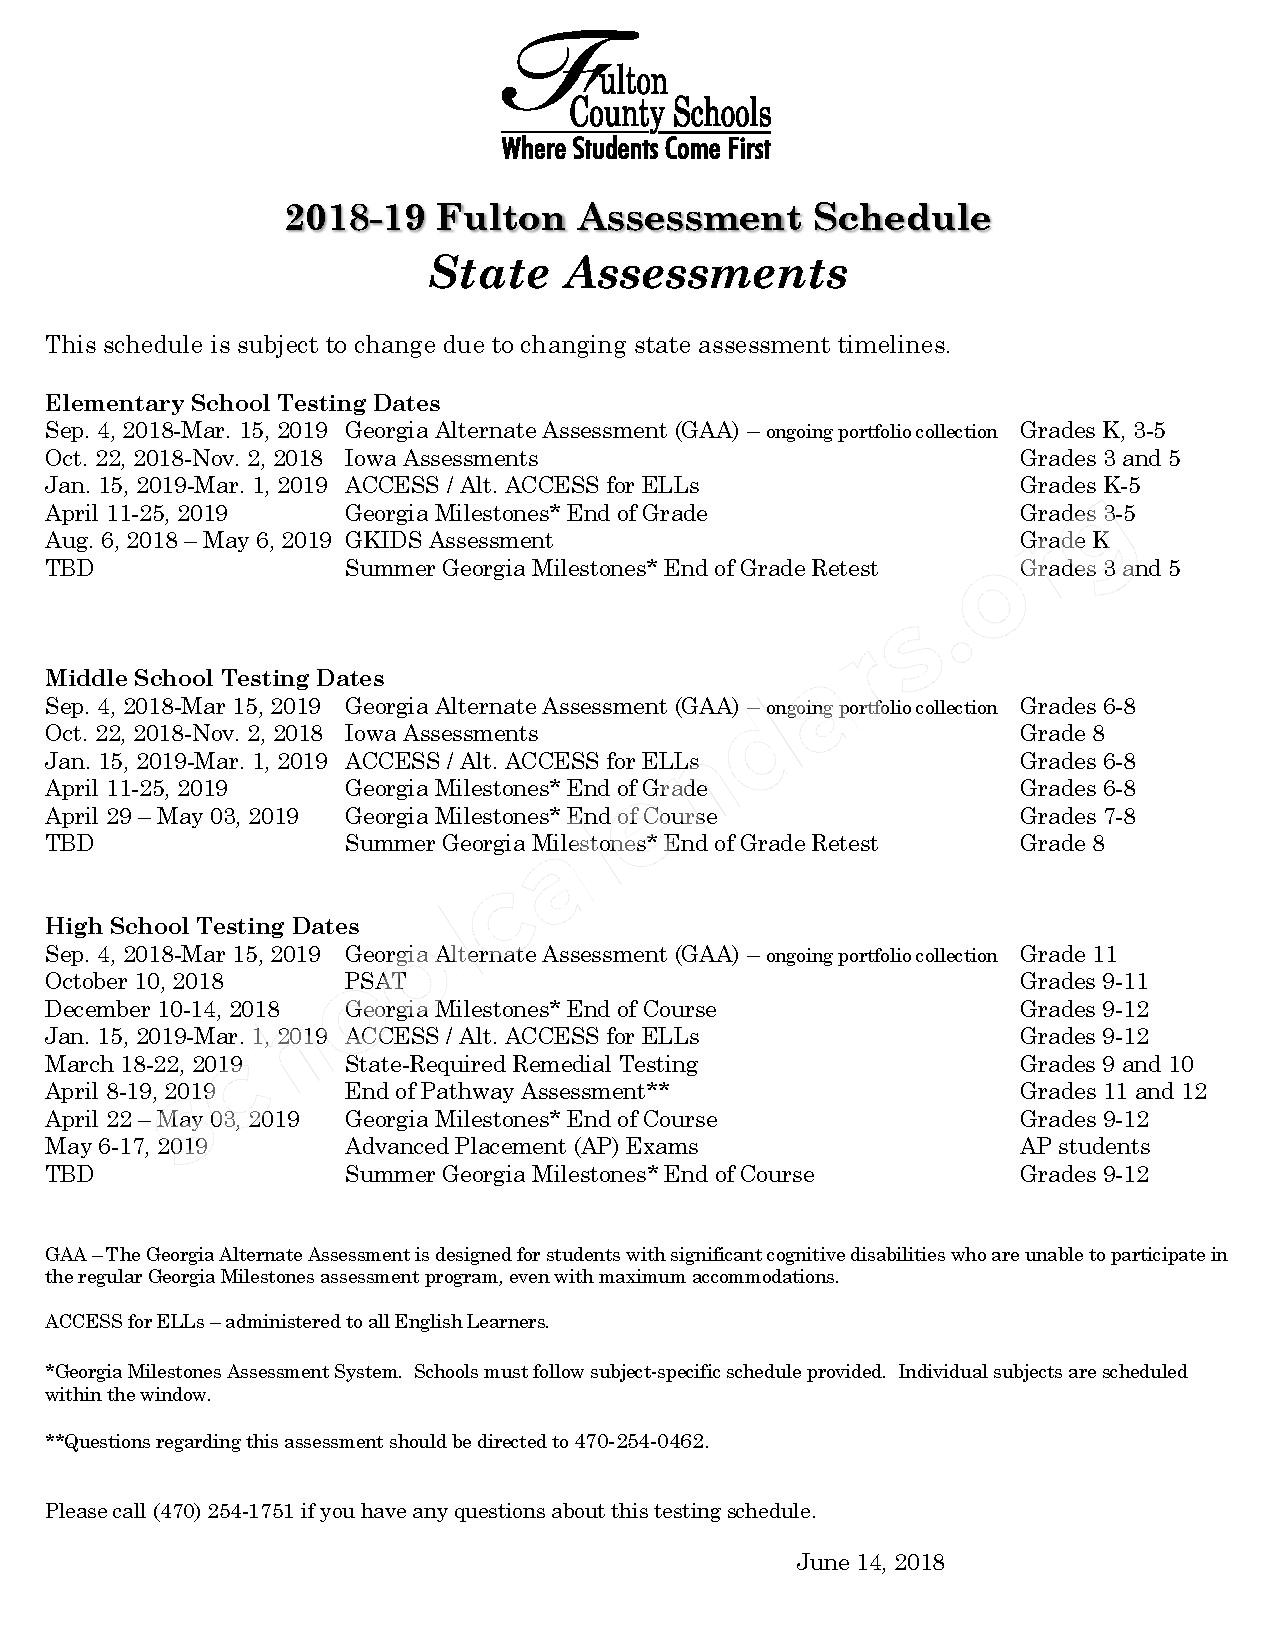 2018 - 2019 Fulton Testing Schedule – Fulton County School District – page 1